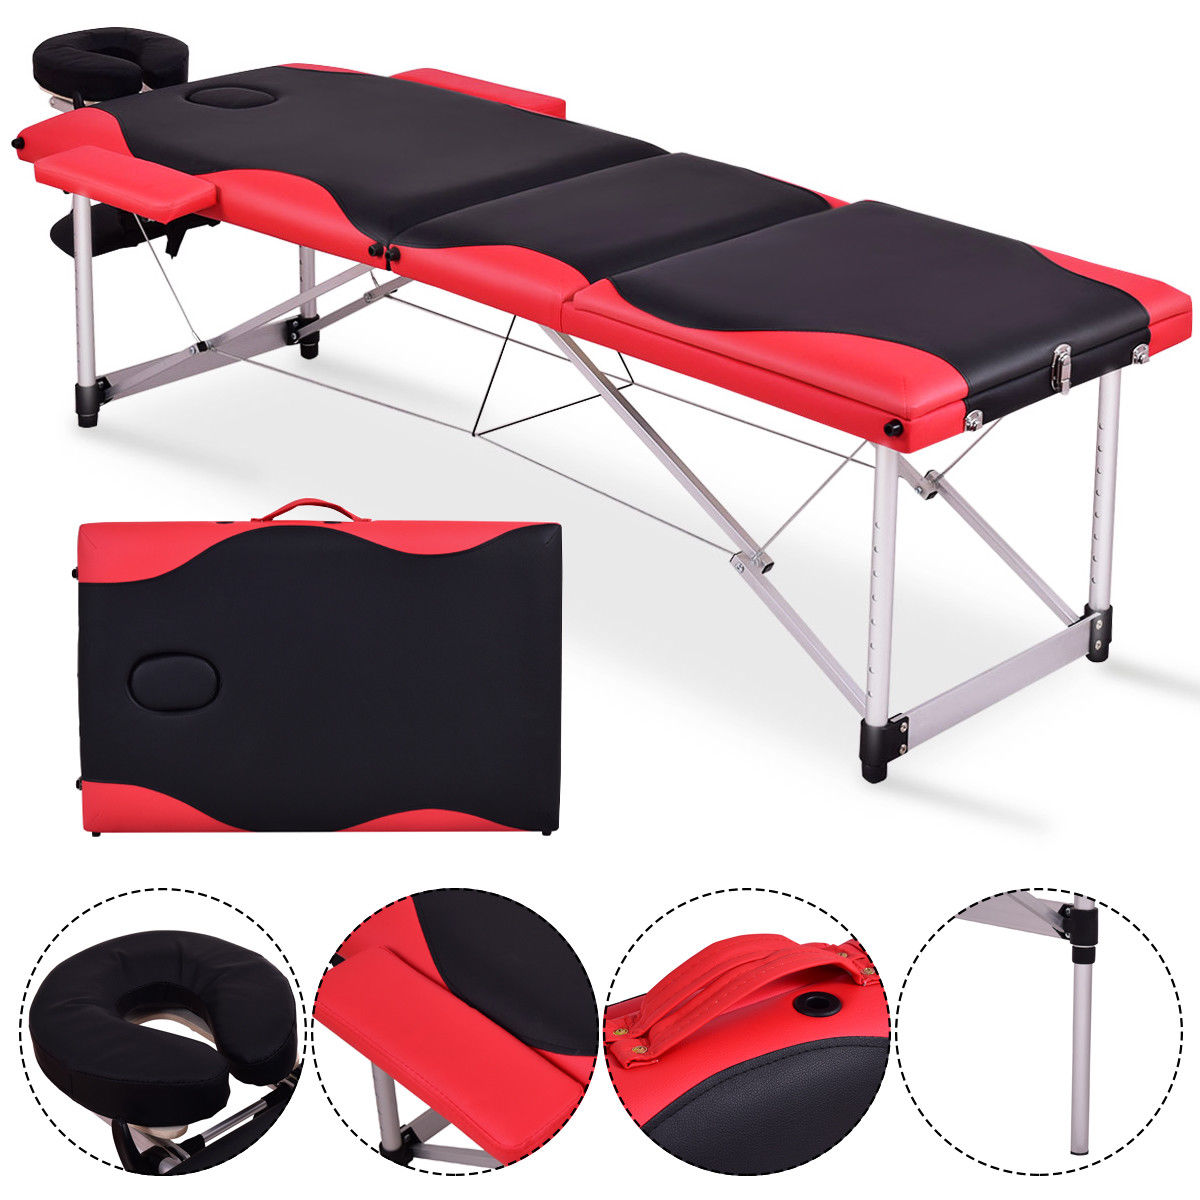 Gymax Portable Massage Table 72''L Aluminum Facial SPA Bed Tattoo w/Free Carry Case